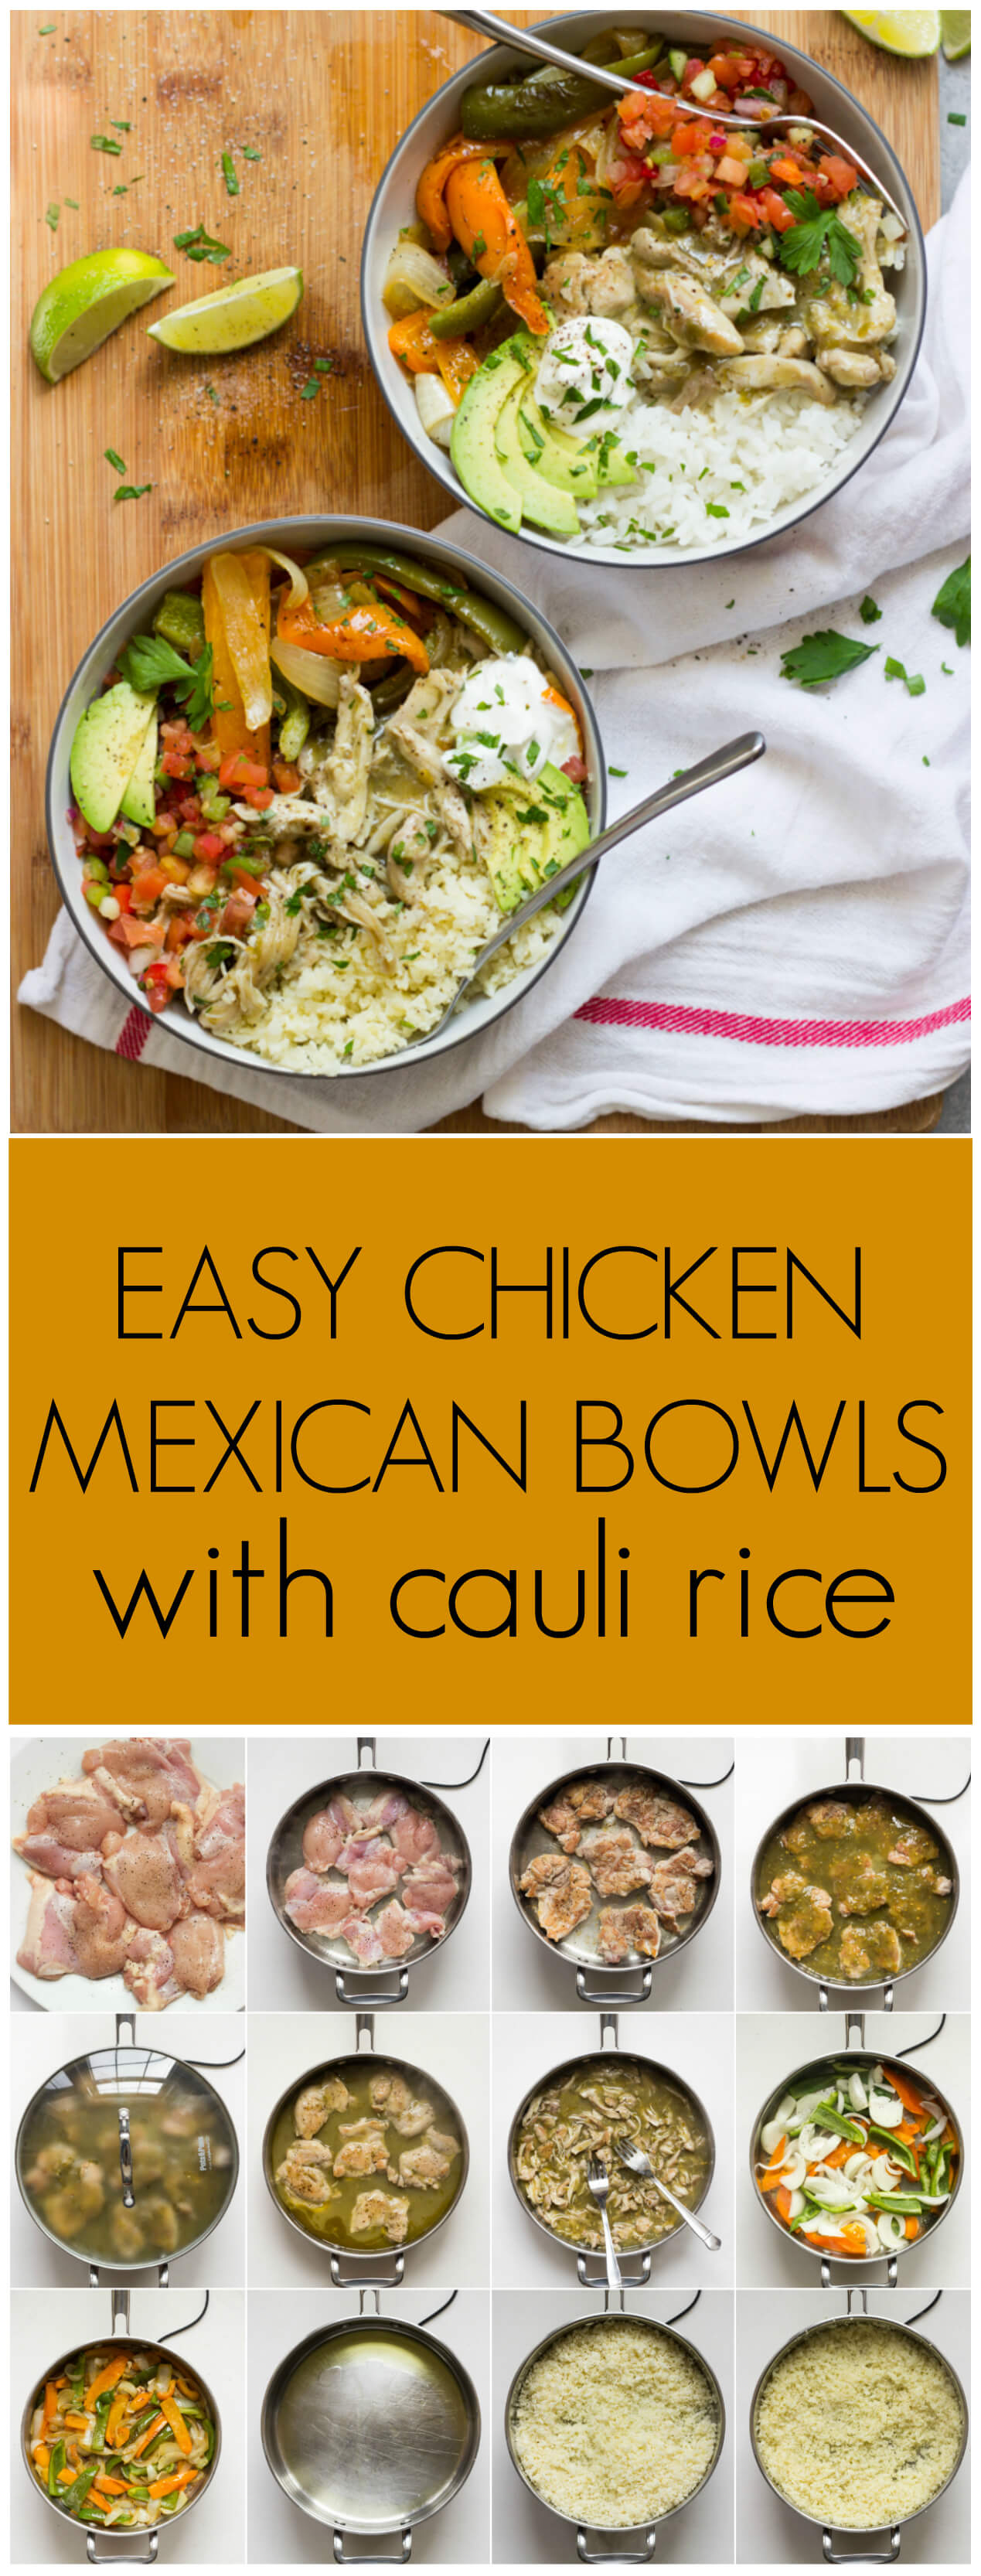 Easy chicken mexican bowls 2 ways easy chicken mexican bowls 2 ways easy skillet shredded chicken served over forumfinder Choice Image